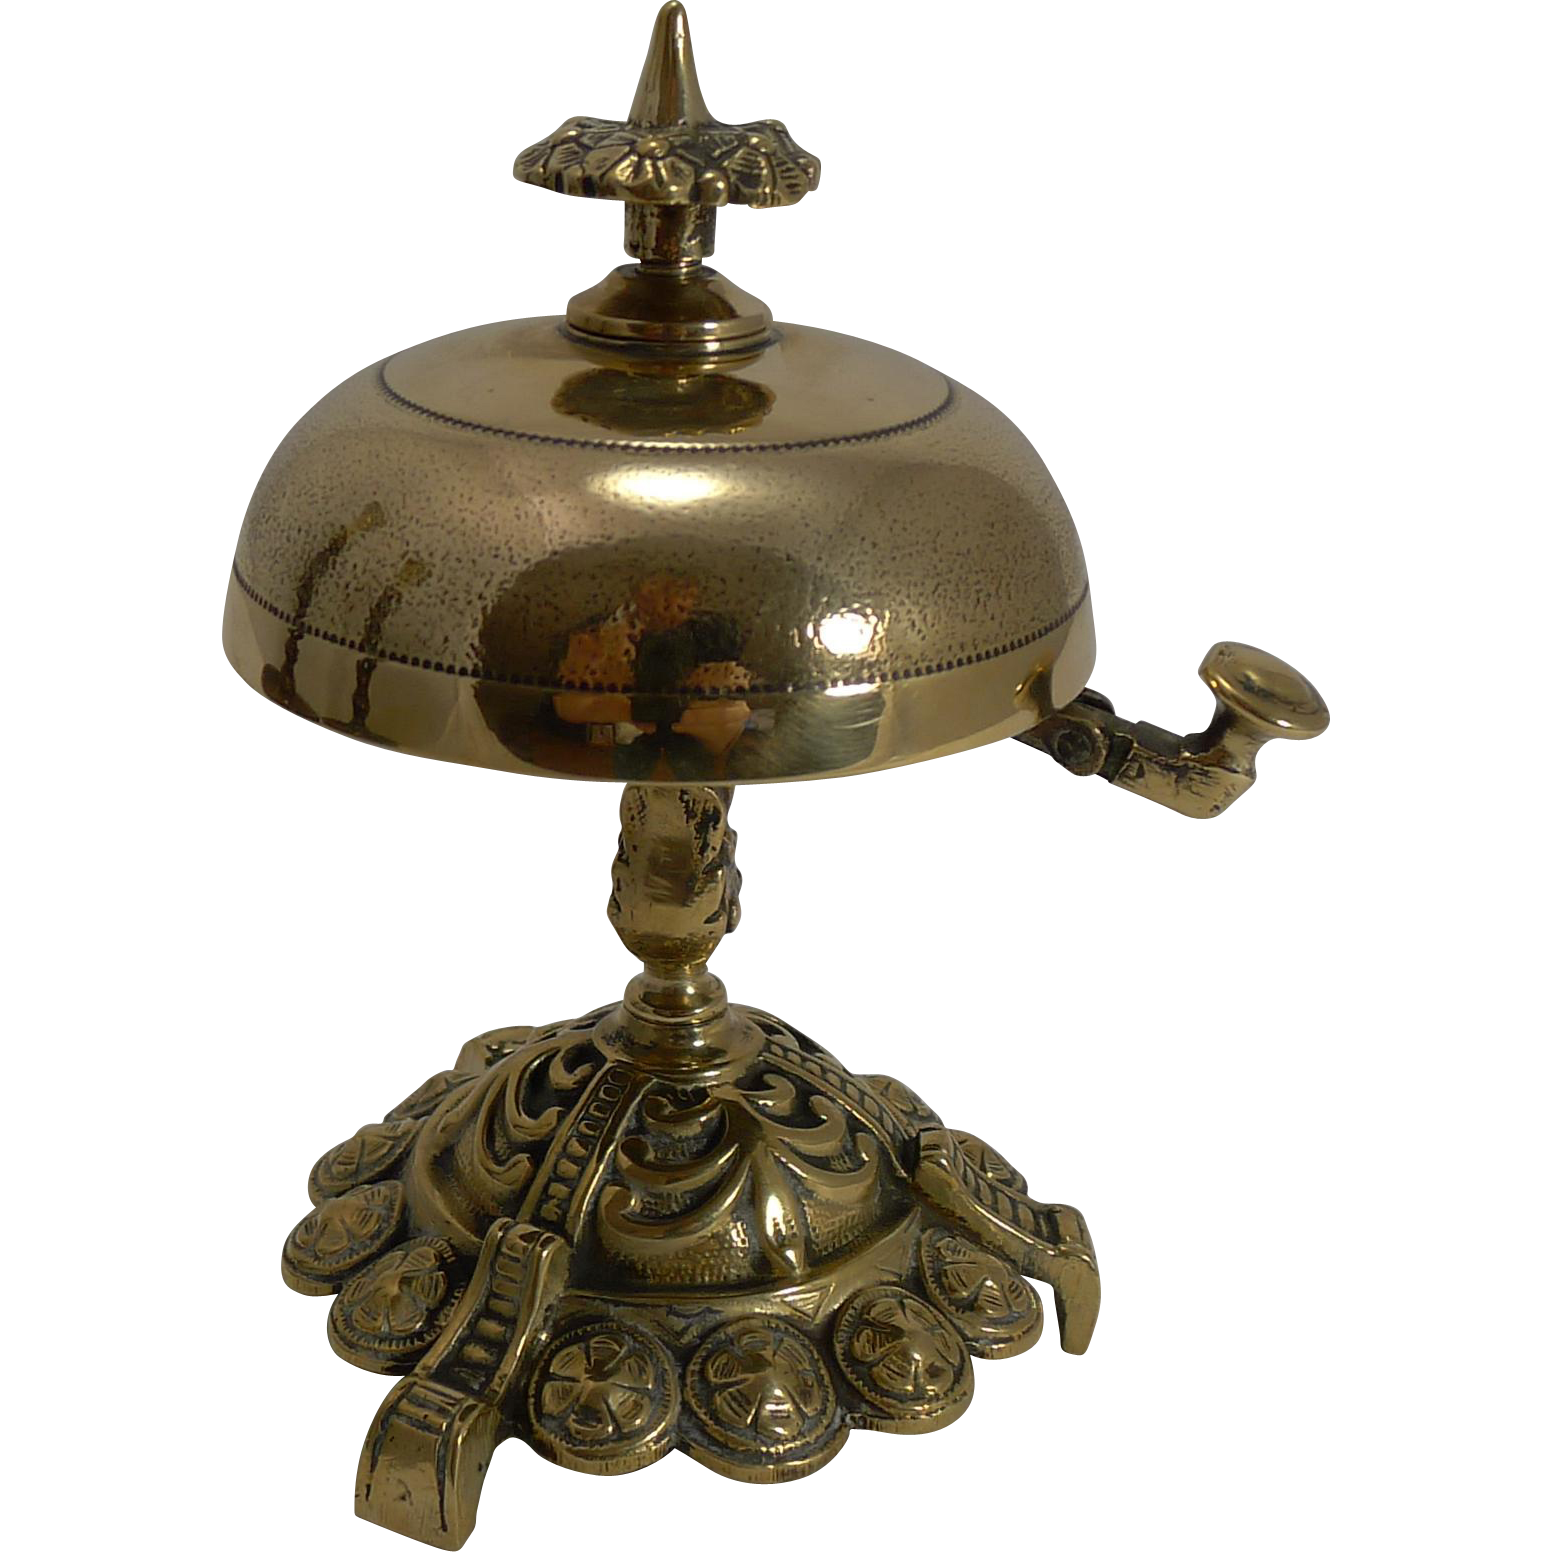 Antique English Brass Desk / Counter Bell c.1870